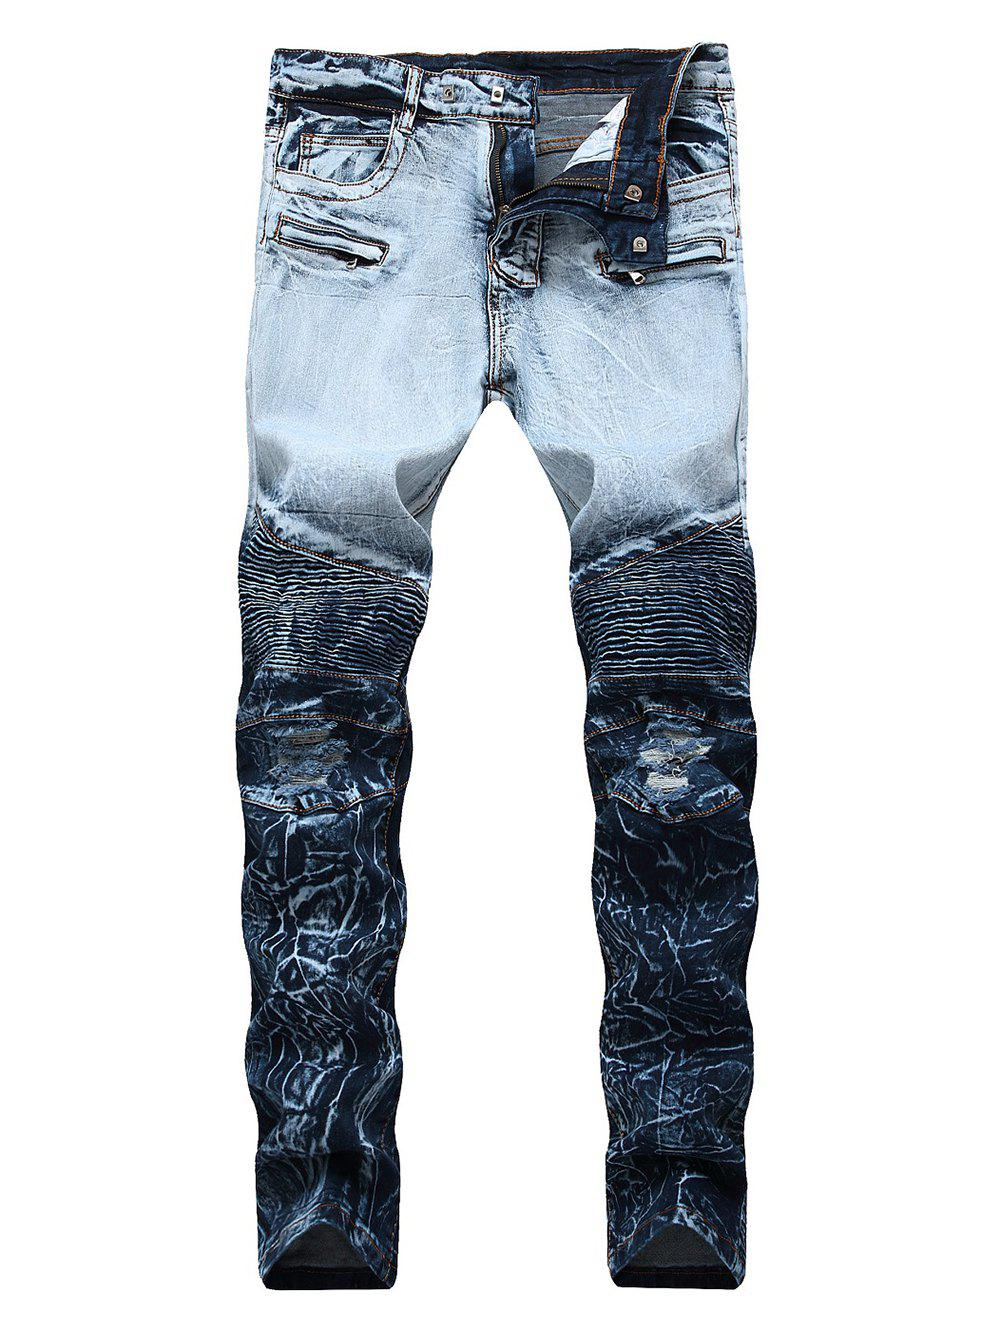 Buy Ombre Zip Embellished Biker Jeans